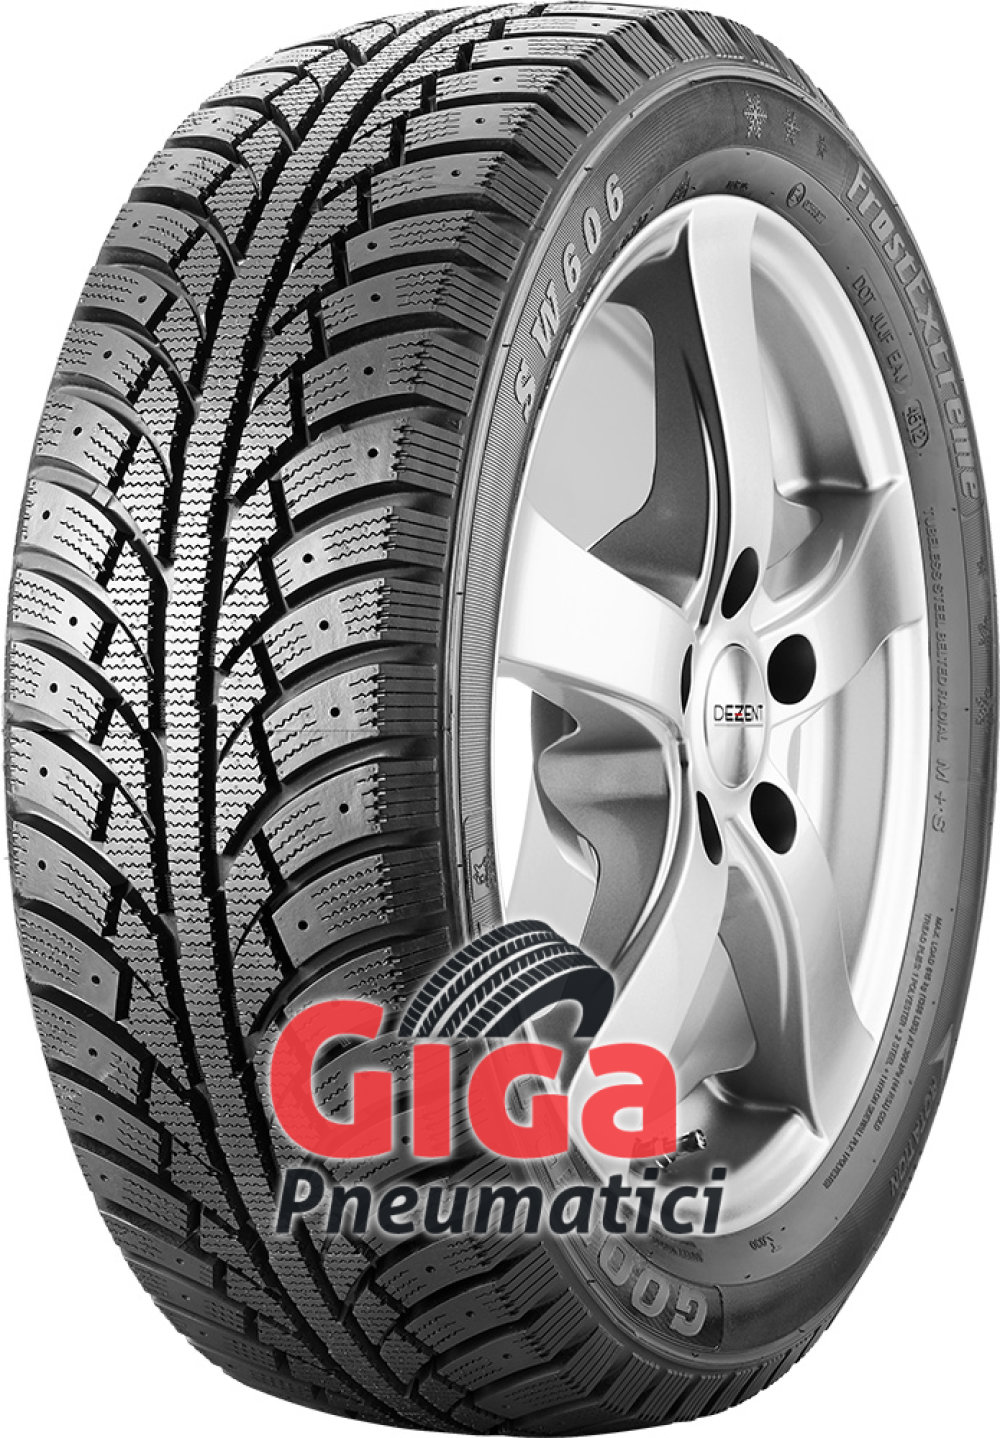 Goodride SW606 FrostExtreme ( 215/60 R16 95T , pneumatico chiodabile )